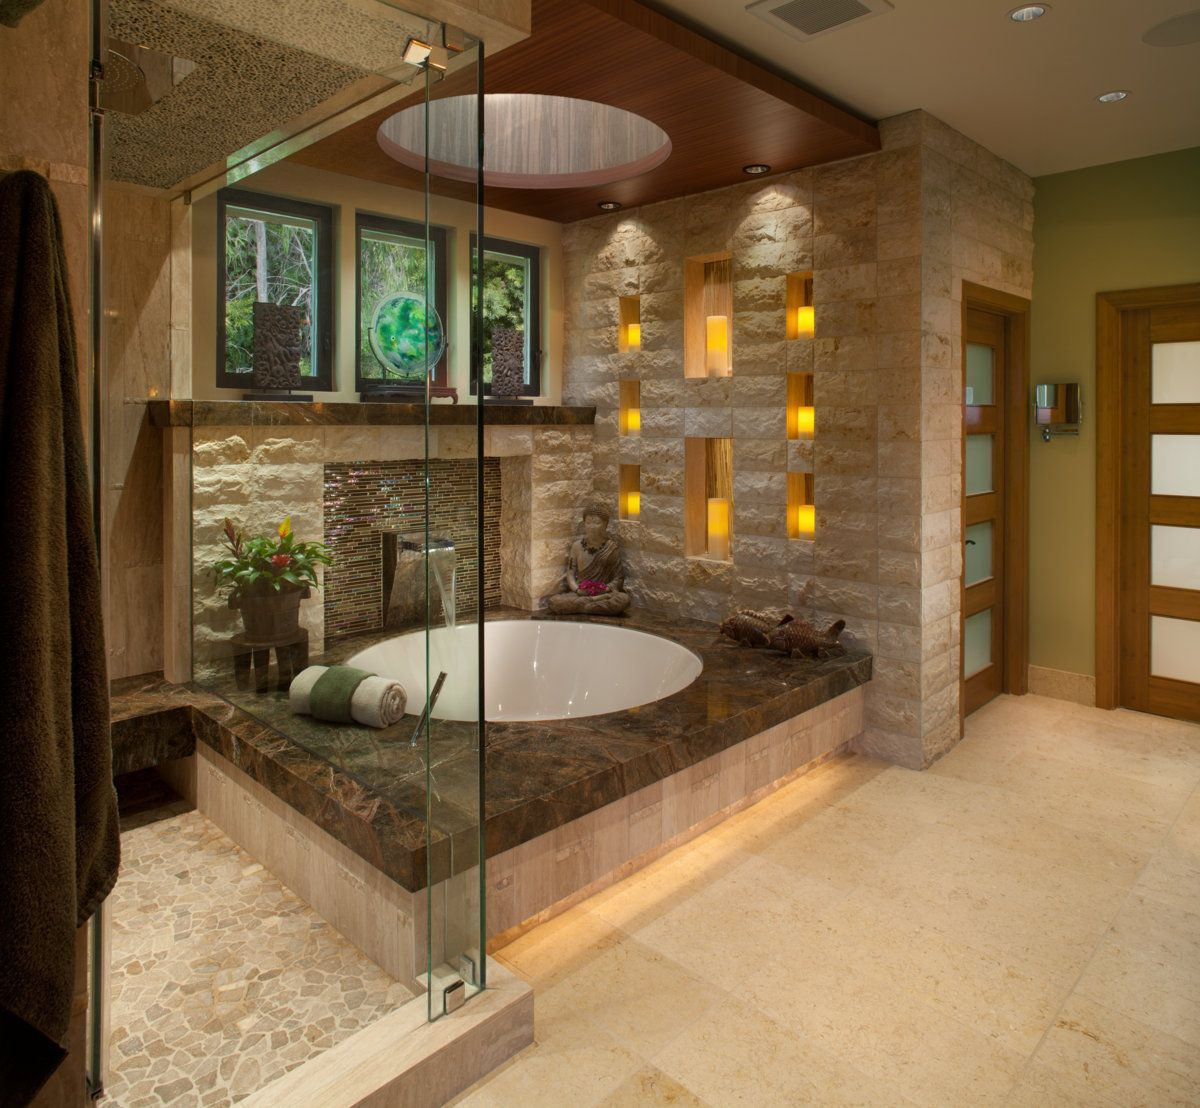 Oriental Style Bathroom Design Ideas Dizajn Interera Vannoj